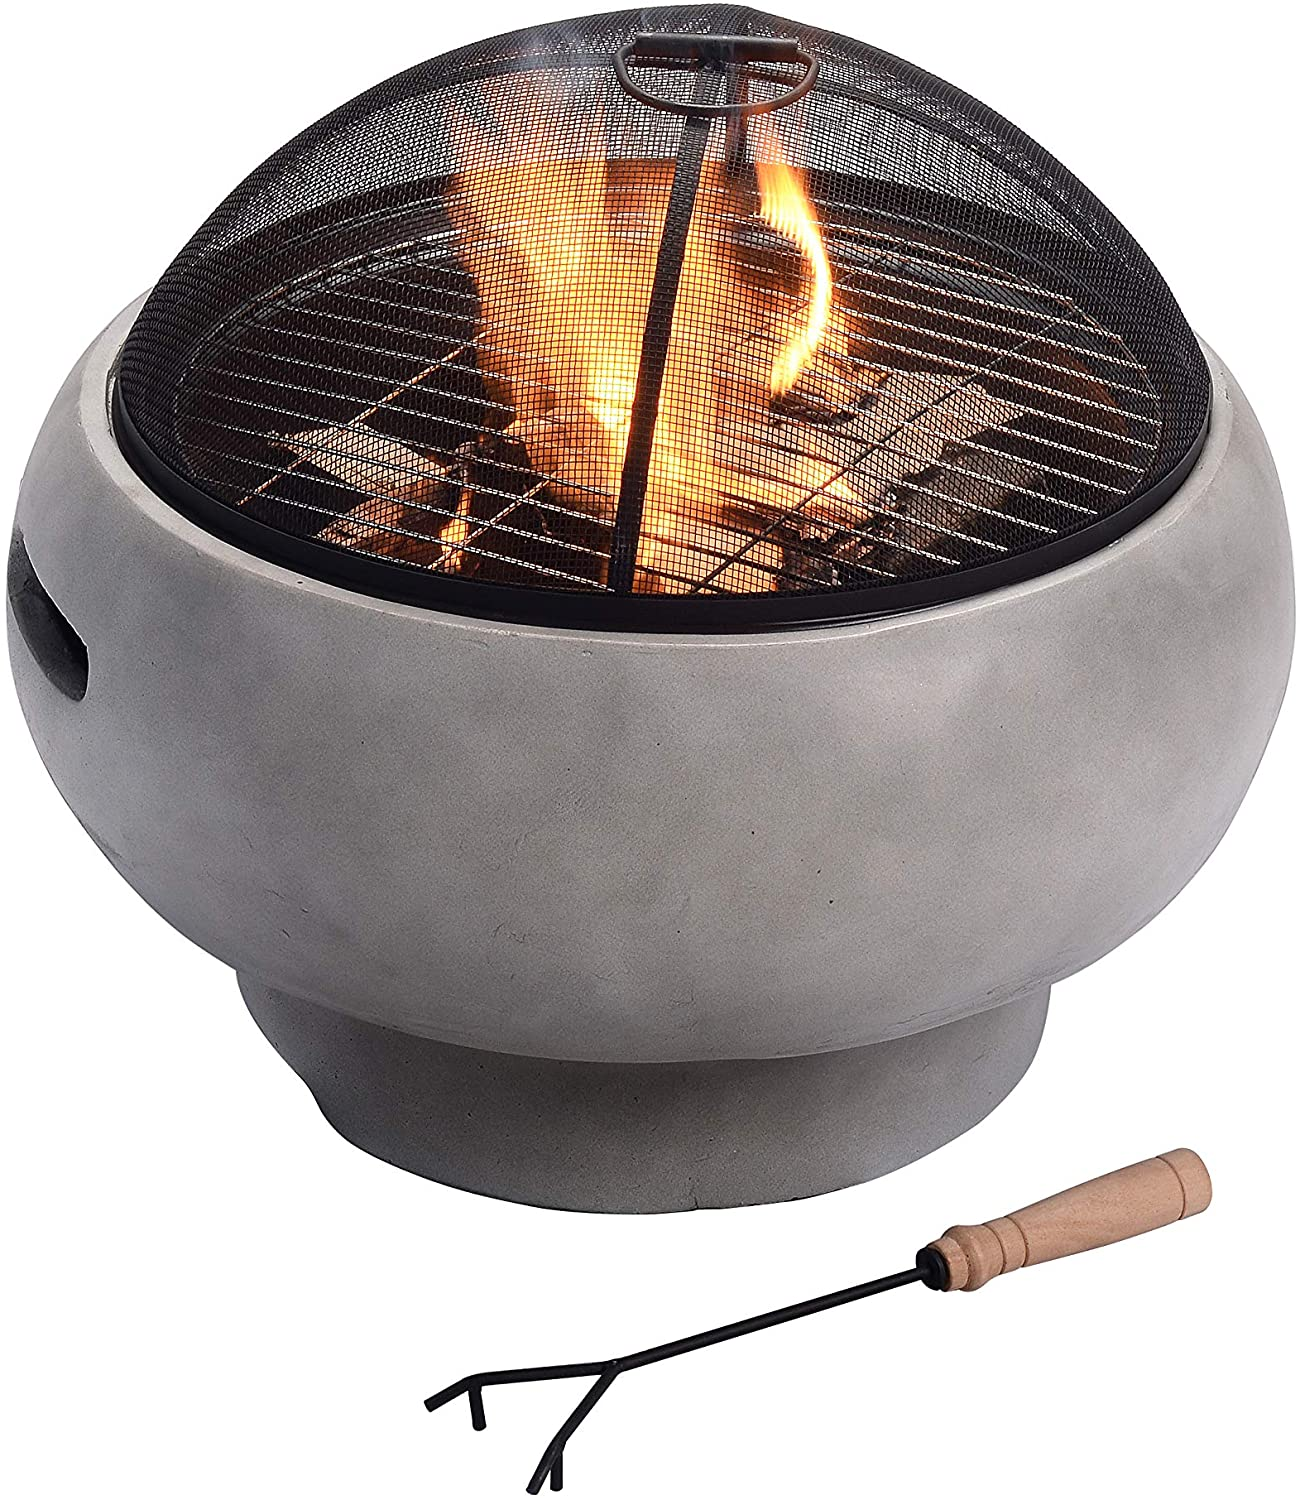 Peaktop Concrete Round Charcoal and Wood Burning Fire Pit